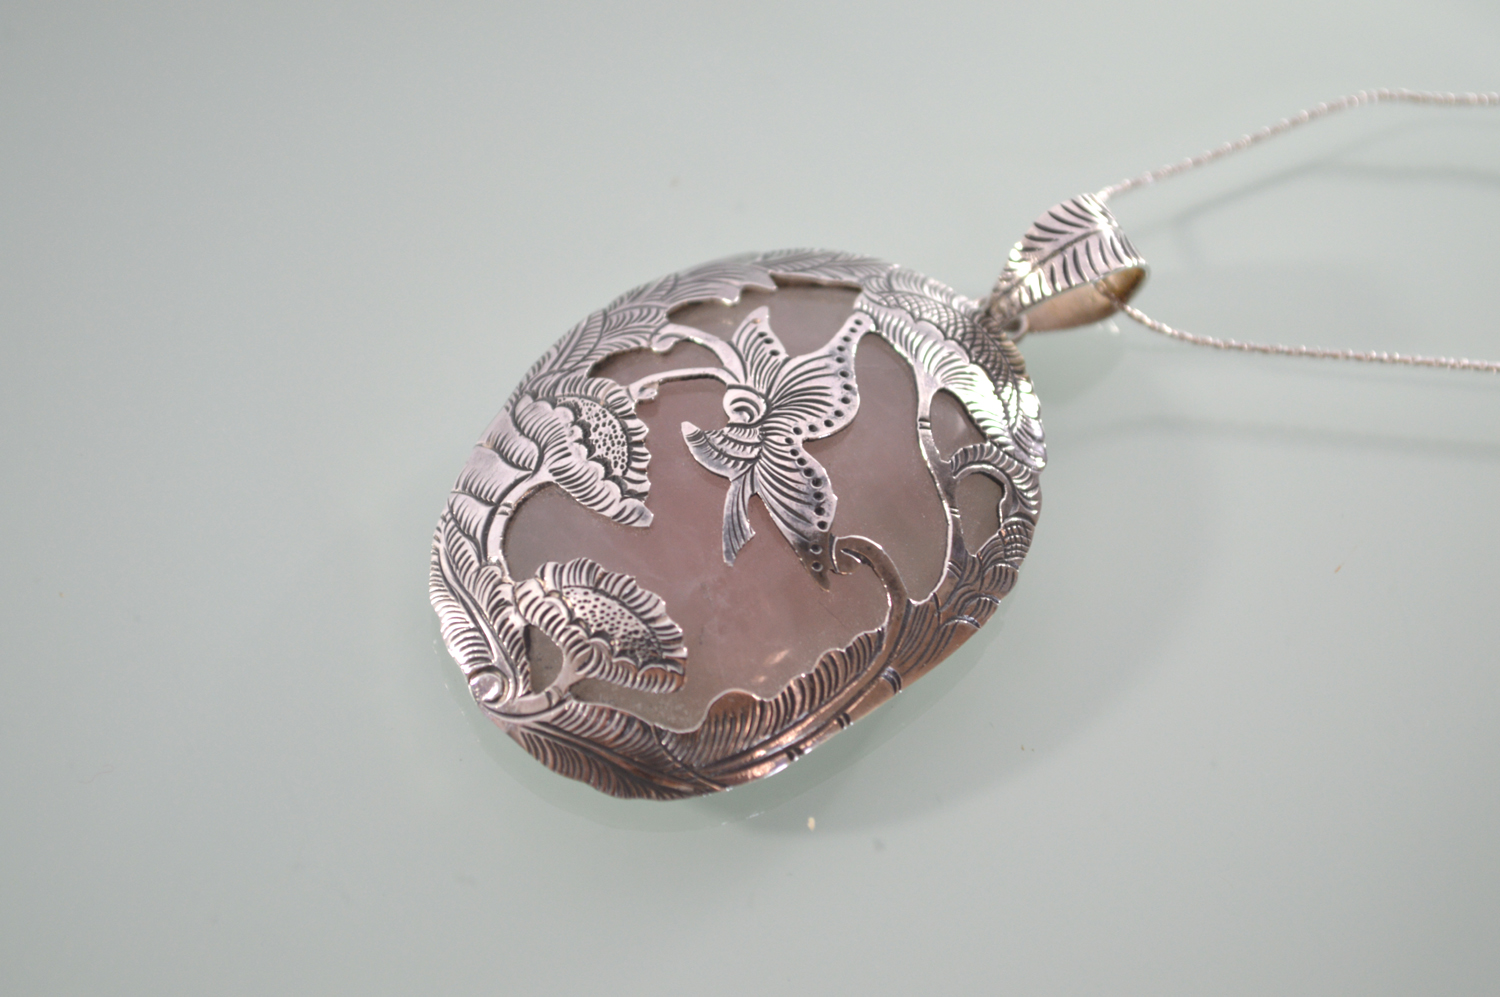 Butterfly embossed sterling silver and rose quartz pendant bali mantra silver rose quartz pendant silver rose quartz pendant angled mozeypictures Image collections